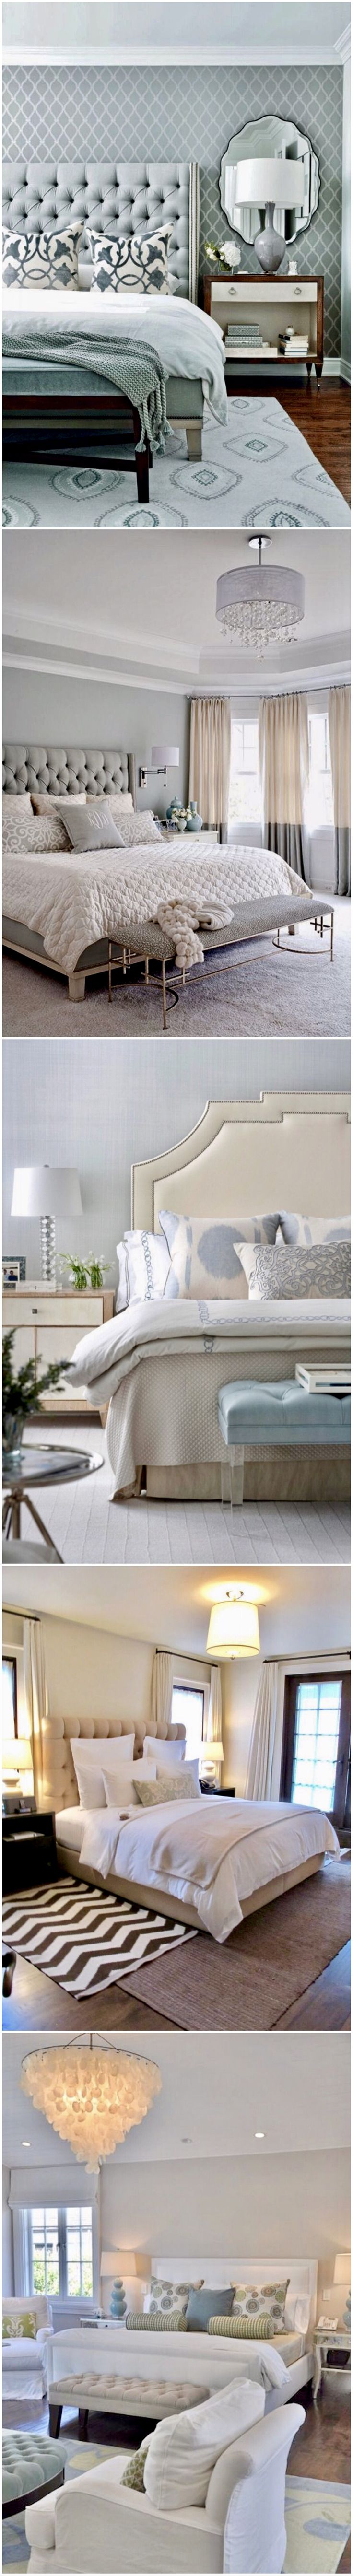 Some of the most popular bedrooms from Pinterest